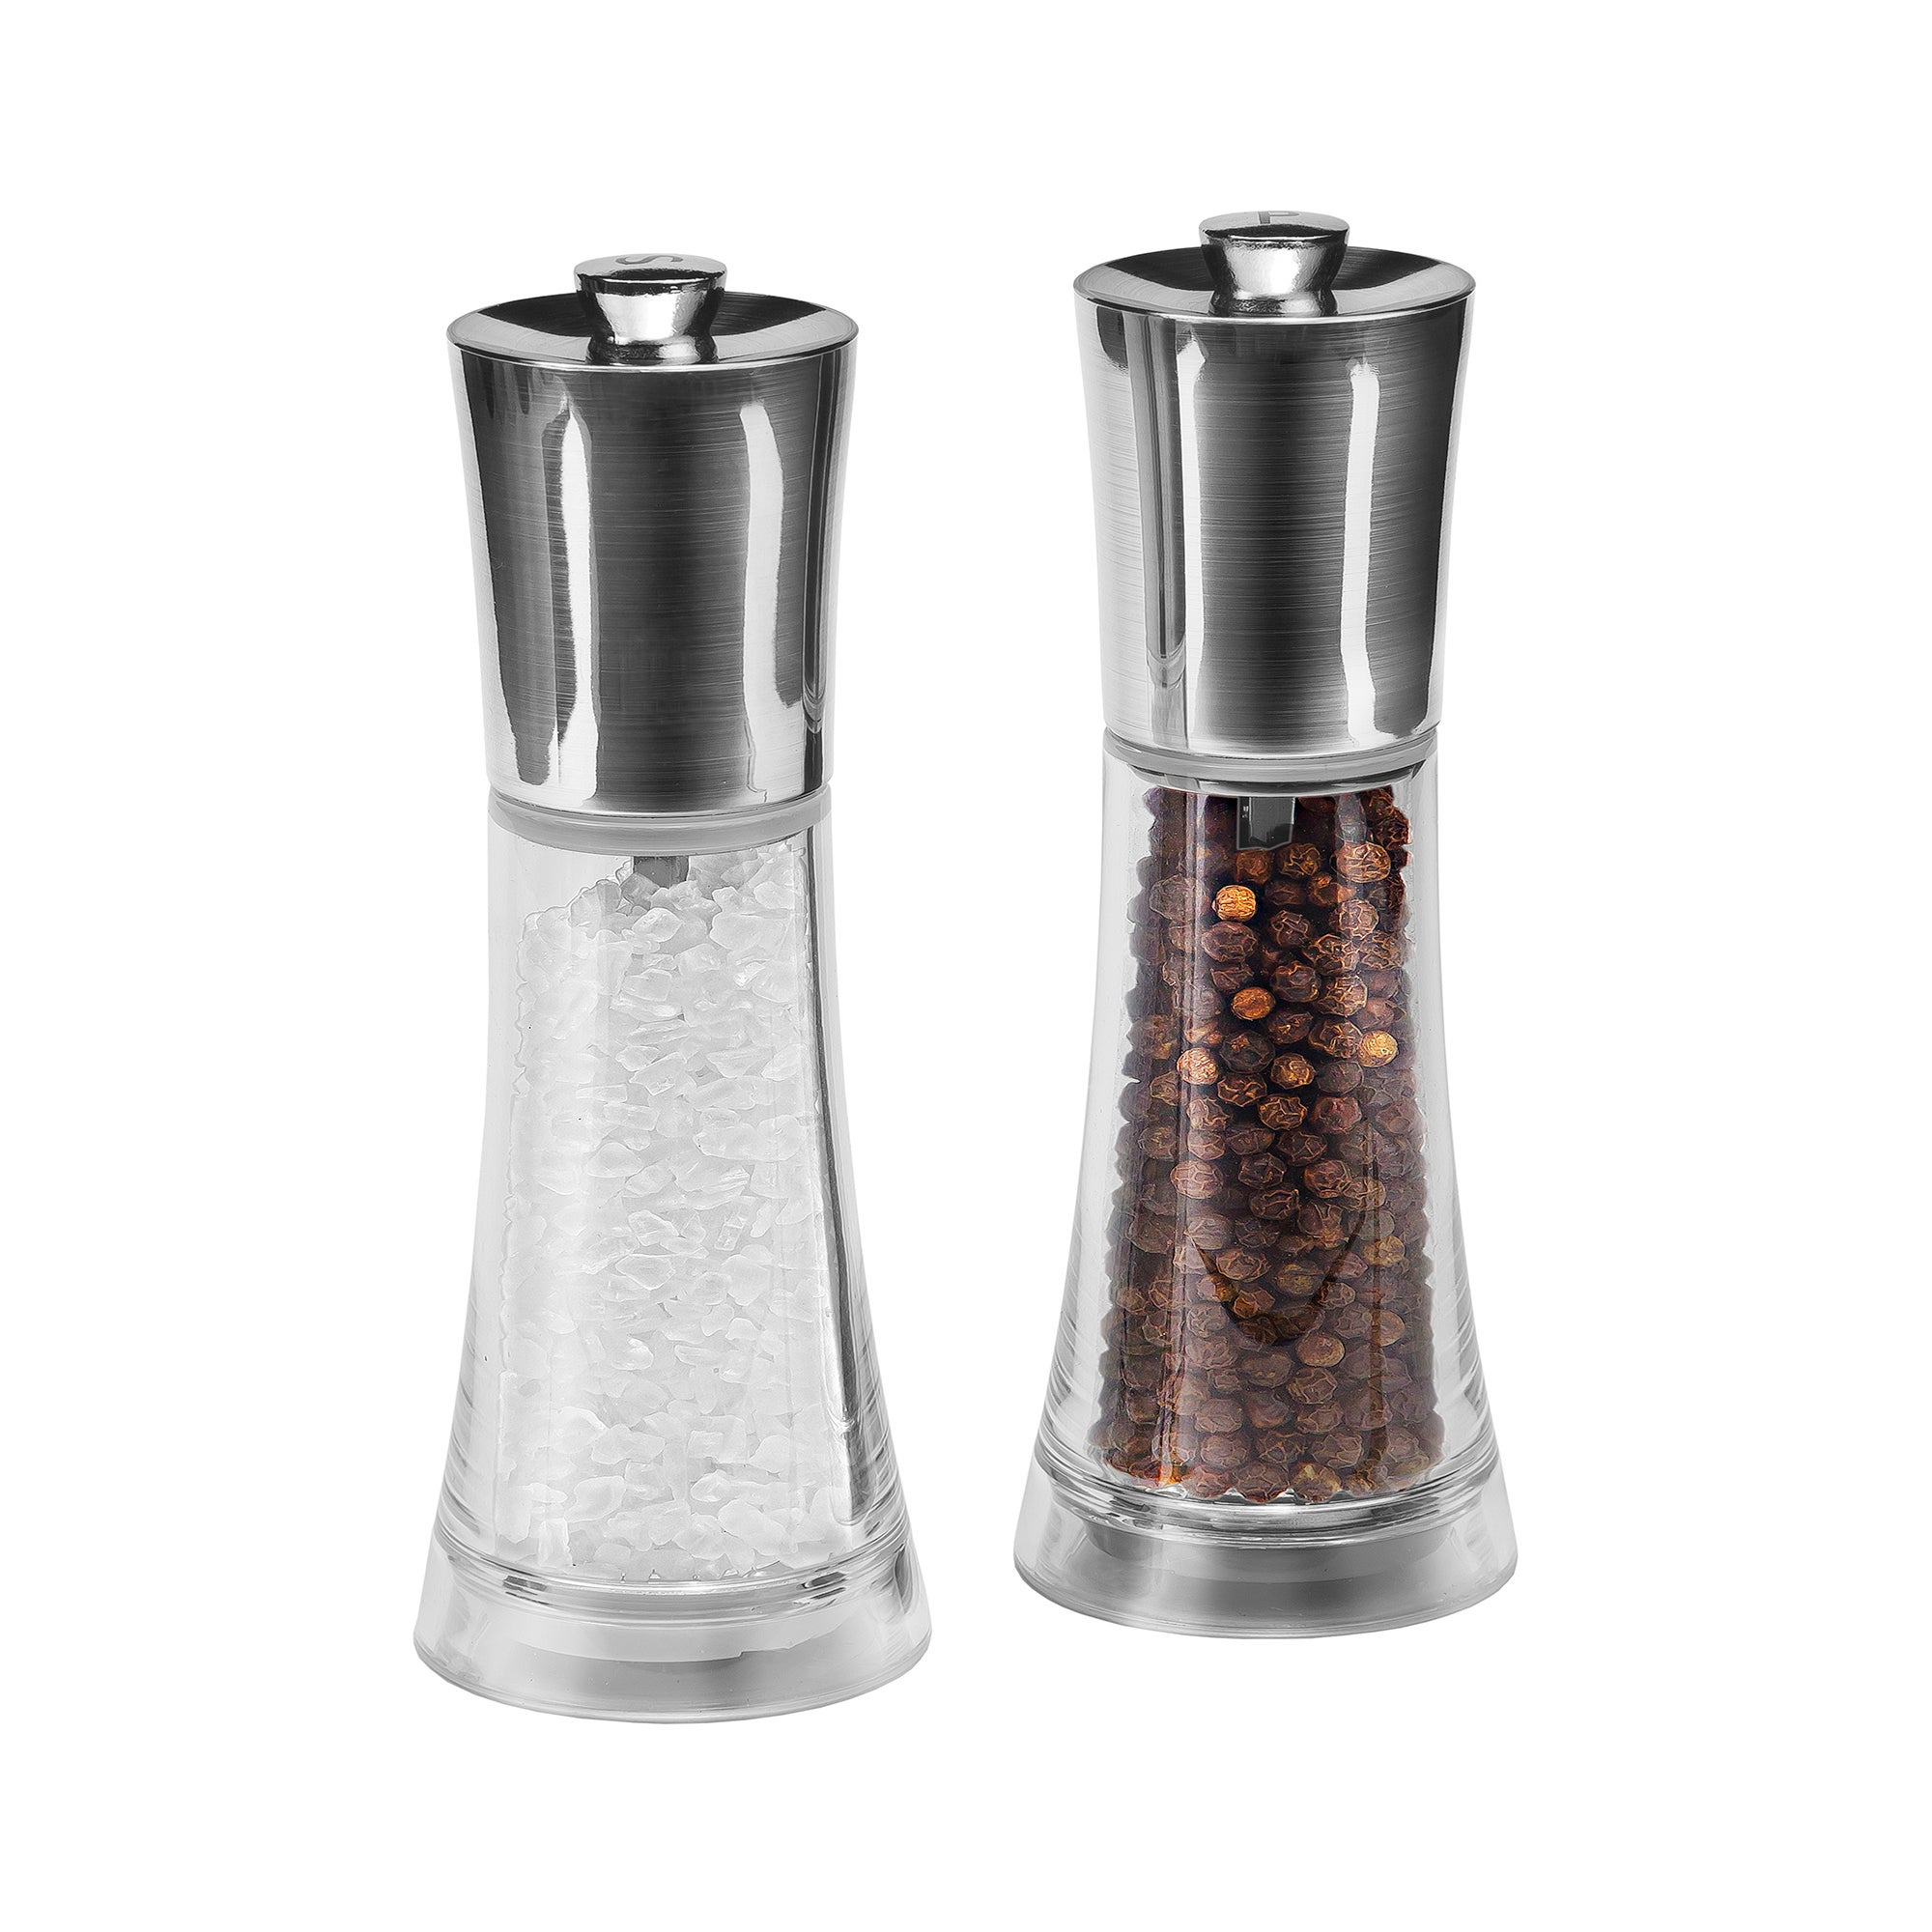 Cole & Mason Everyday Salt and Pepper Mill Gift Set